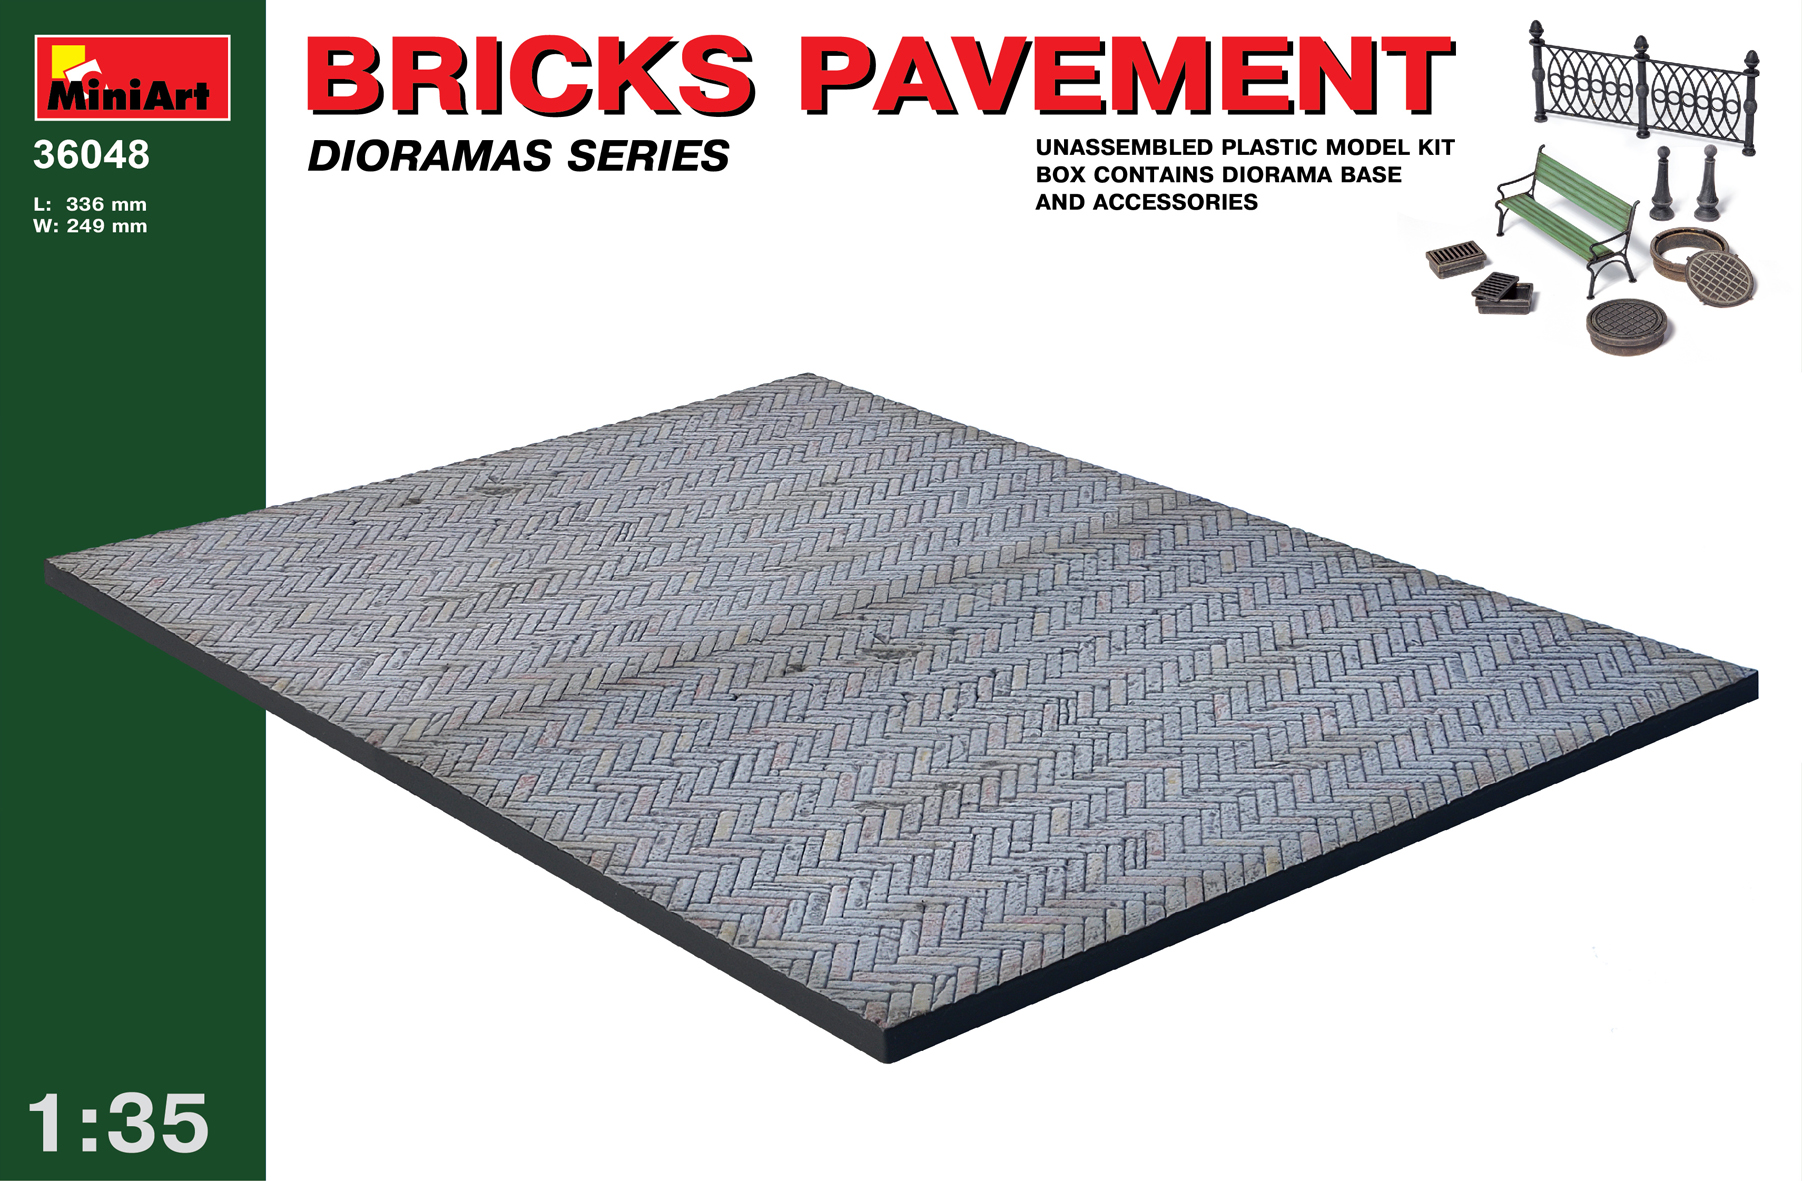 36048 BRICKS PAVEMENT